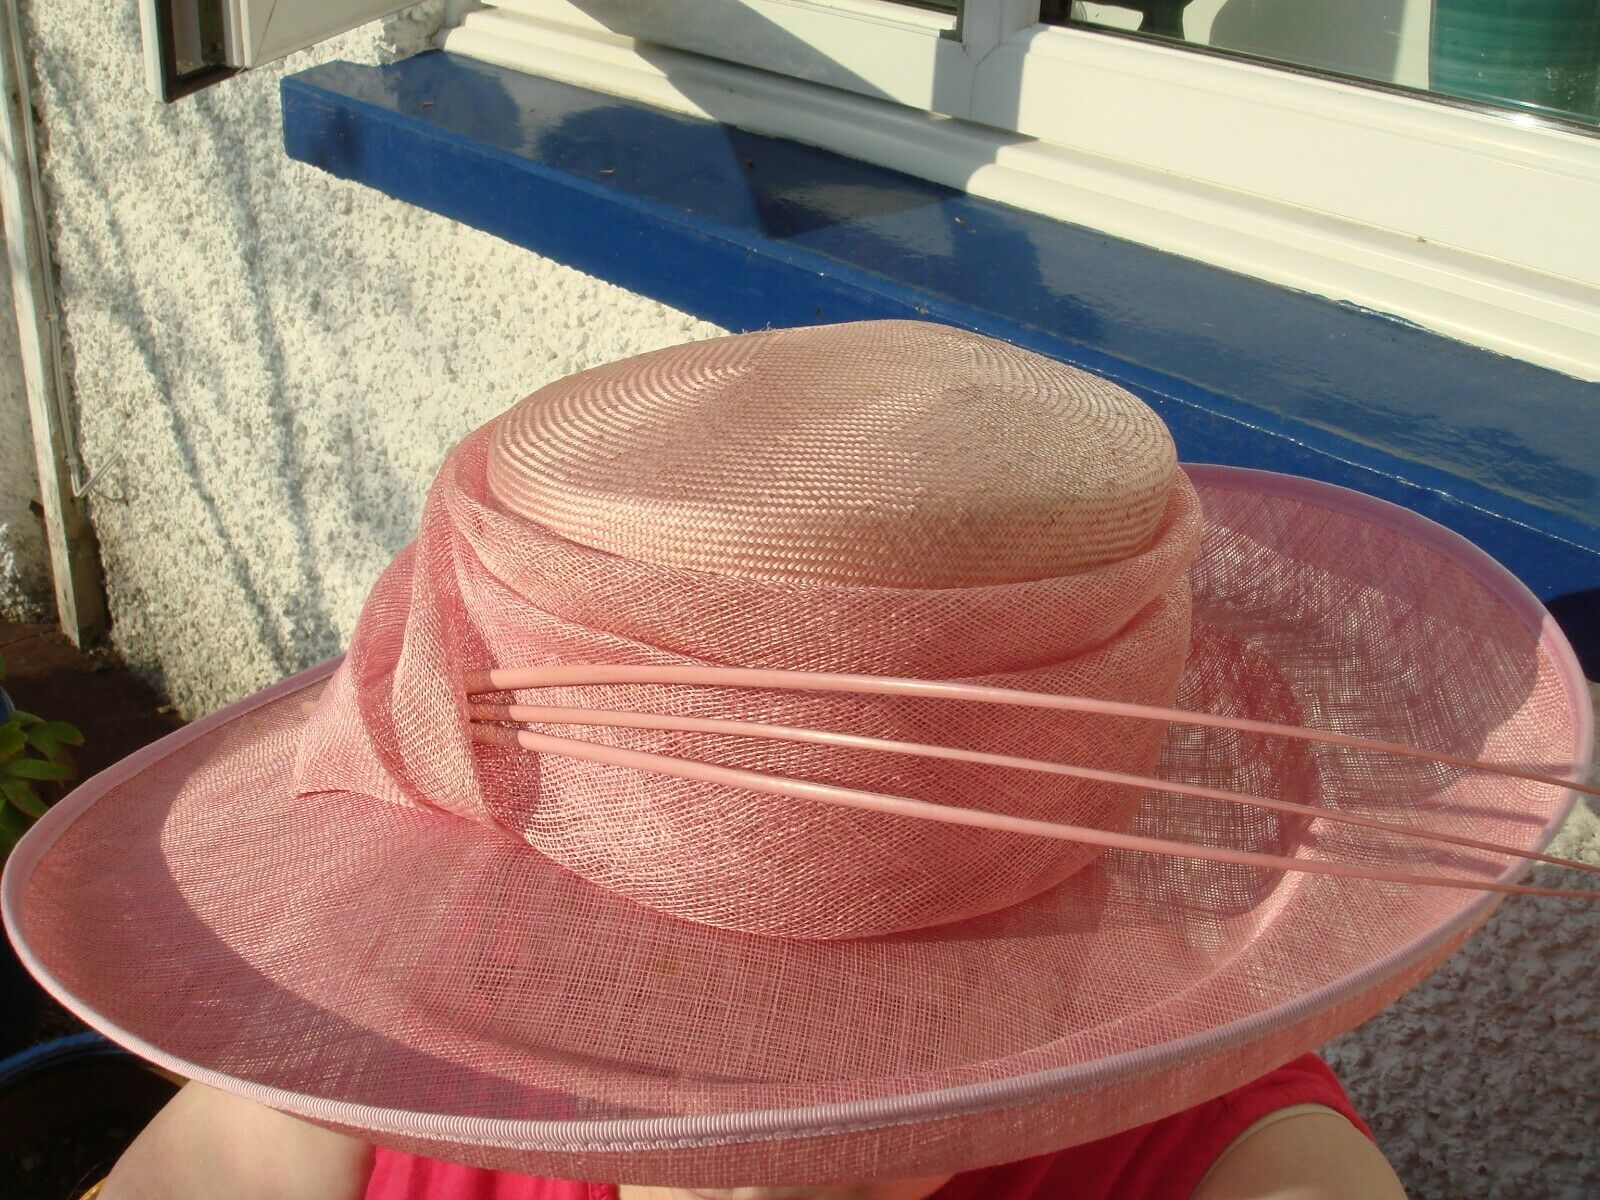 Lady's pale pink occasion hat, new and unworn with slight defect